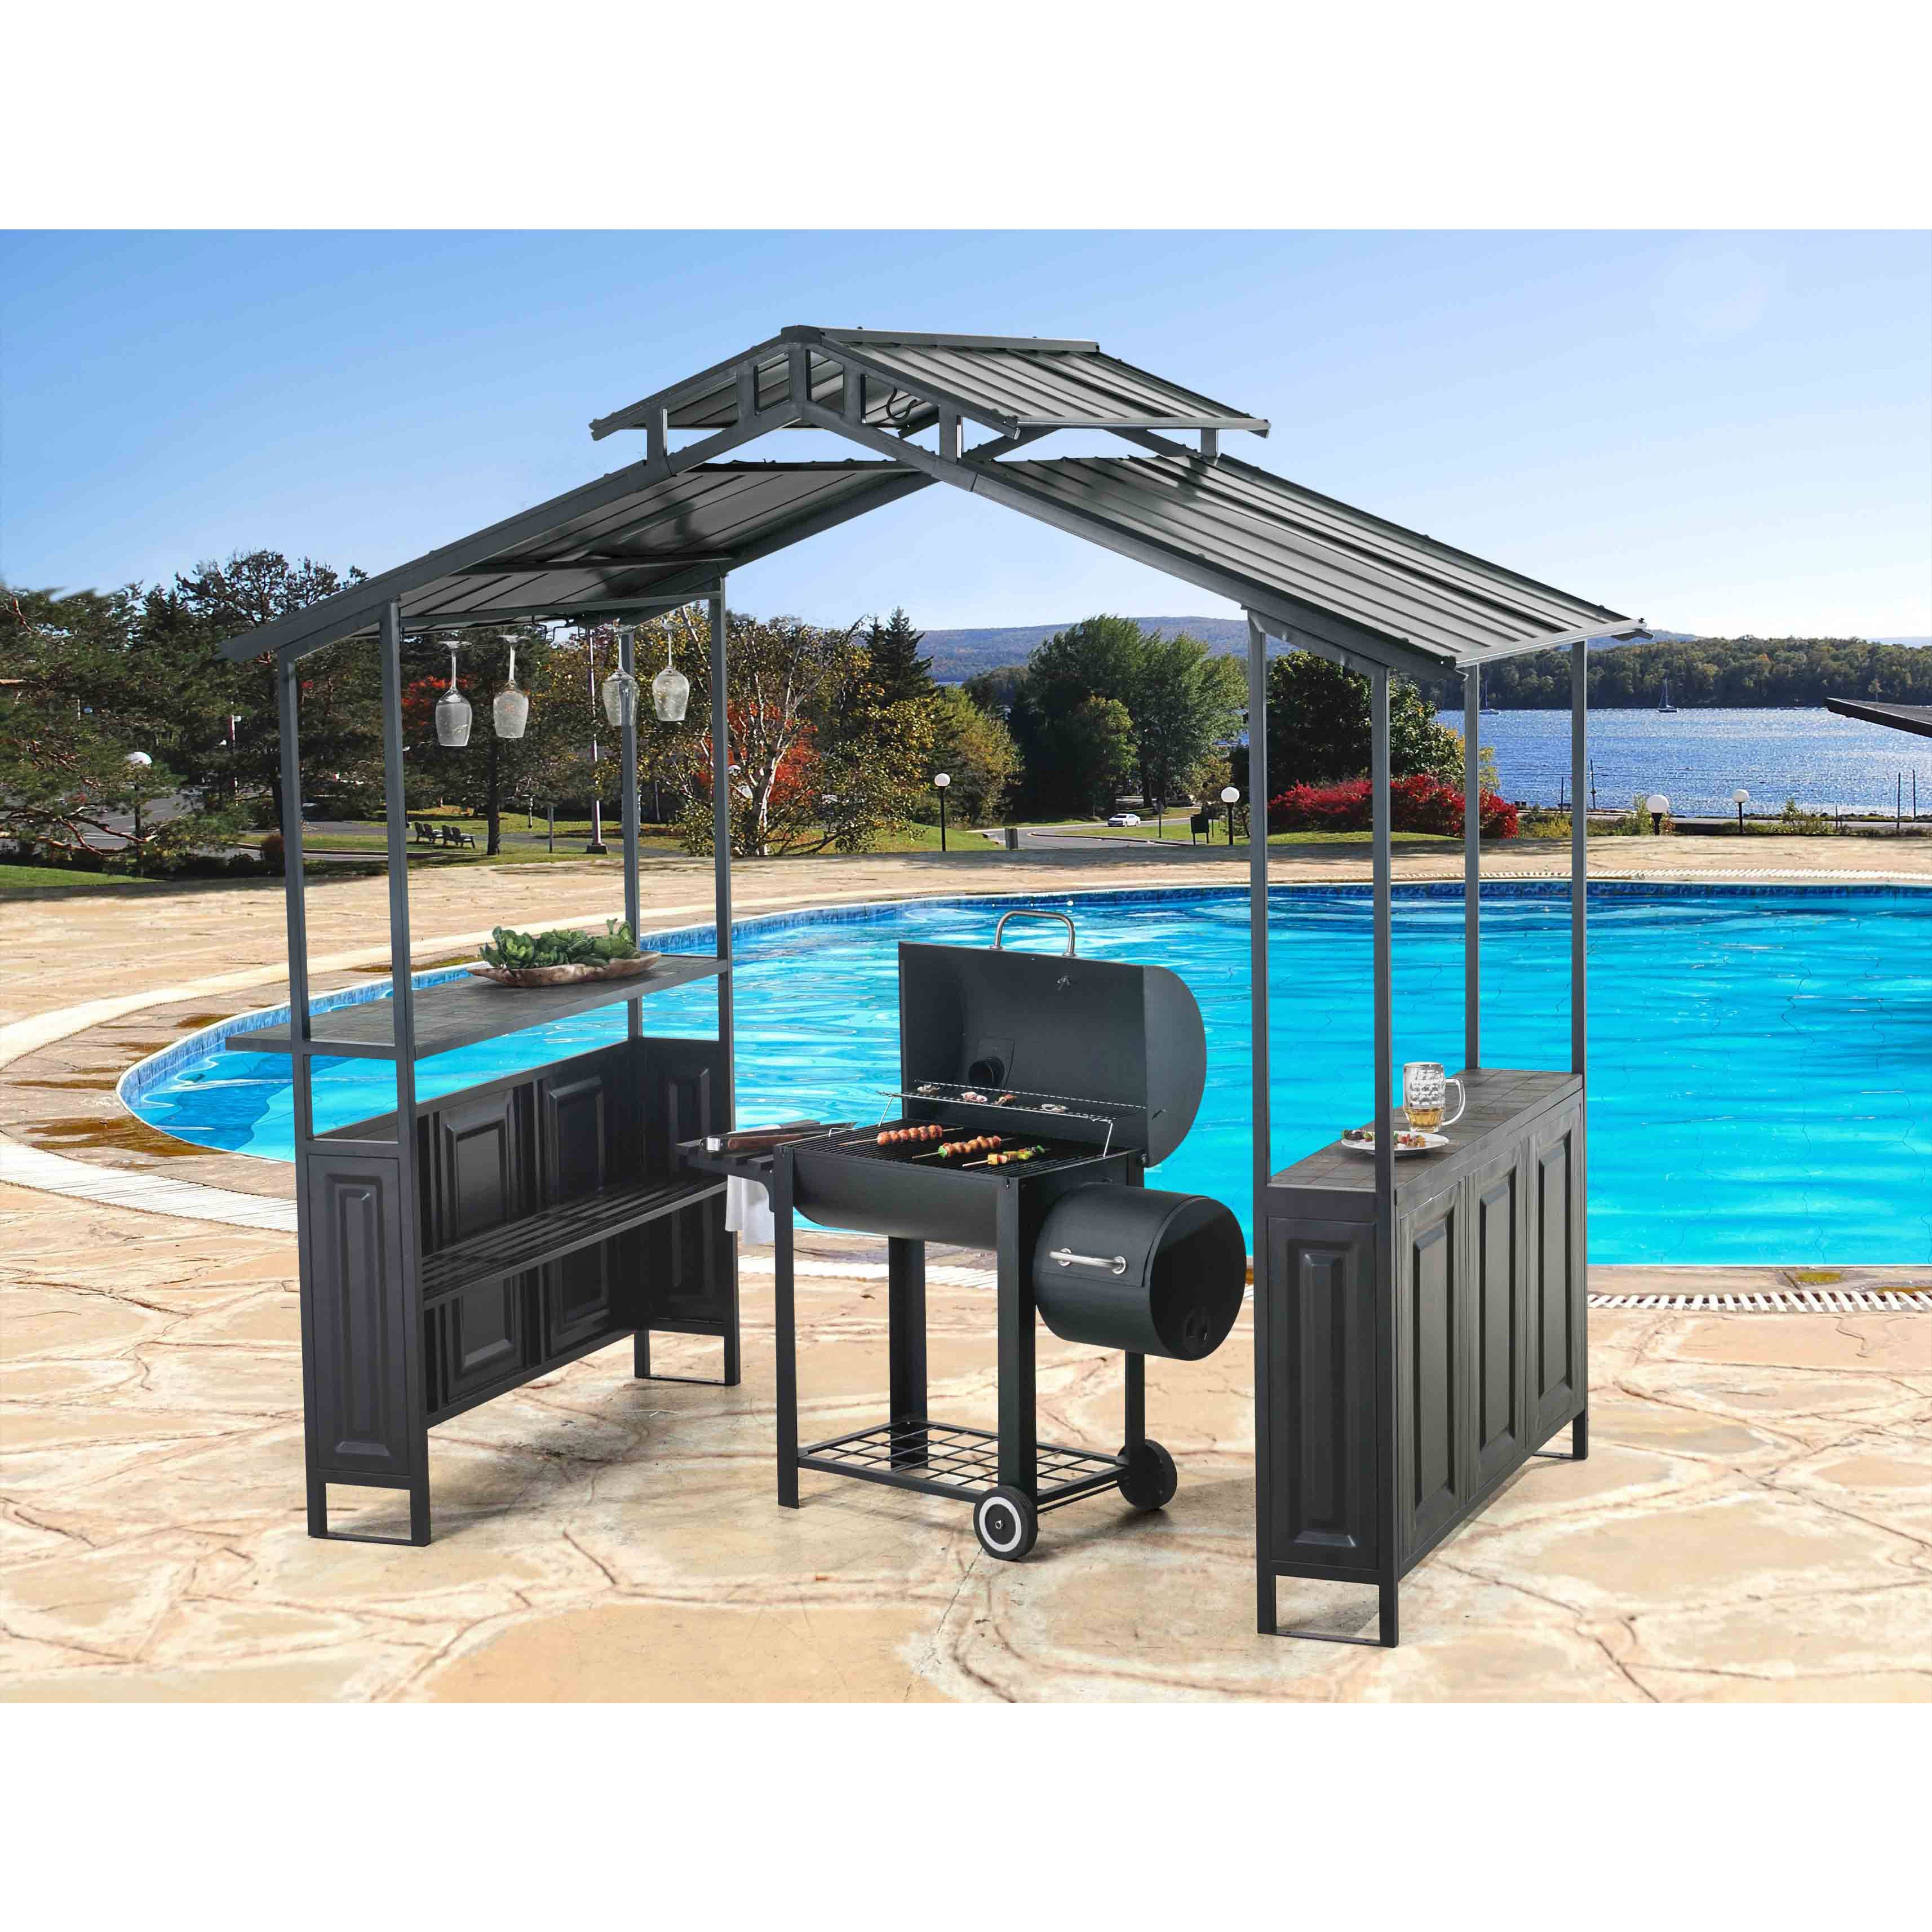 Sunjoy Brown Steel Deluxe 8 X 5 Hard Top Grill Shelter With Serving Bar Free Shipping Today 19255562